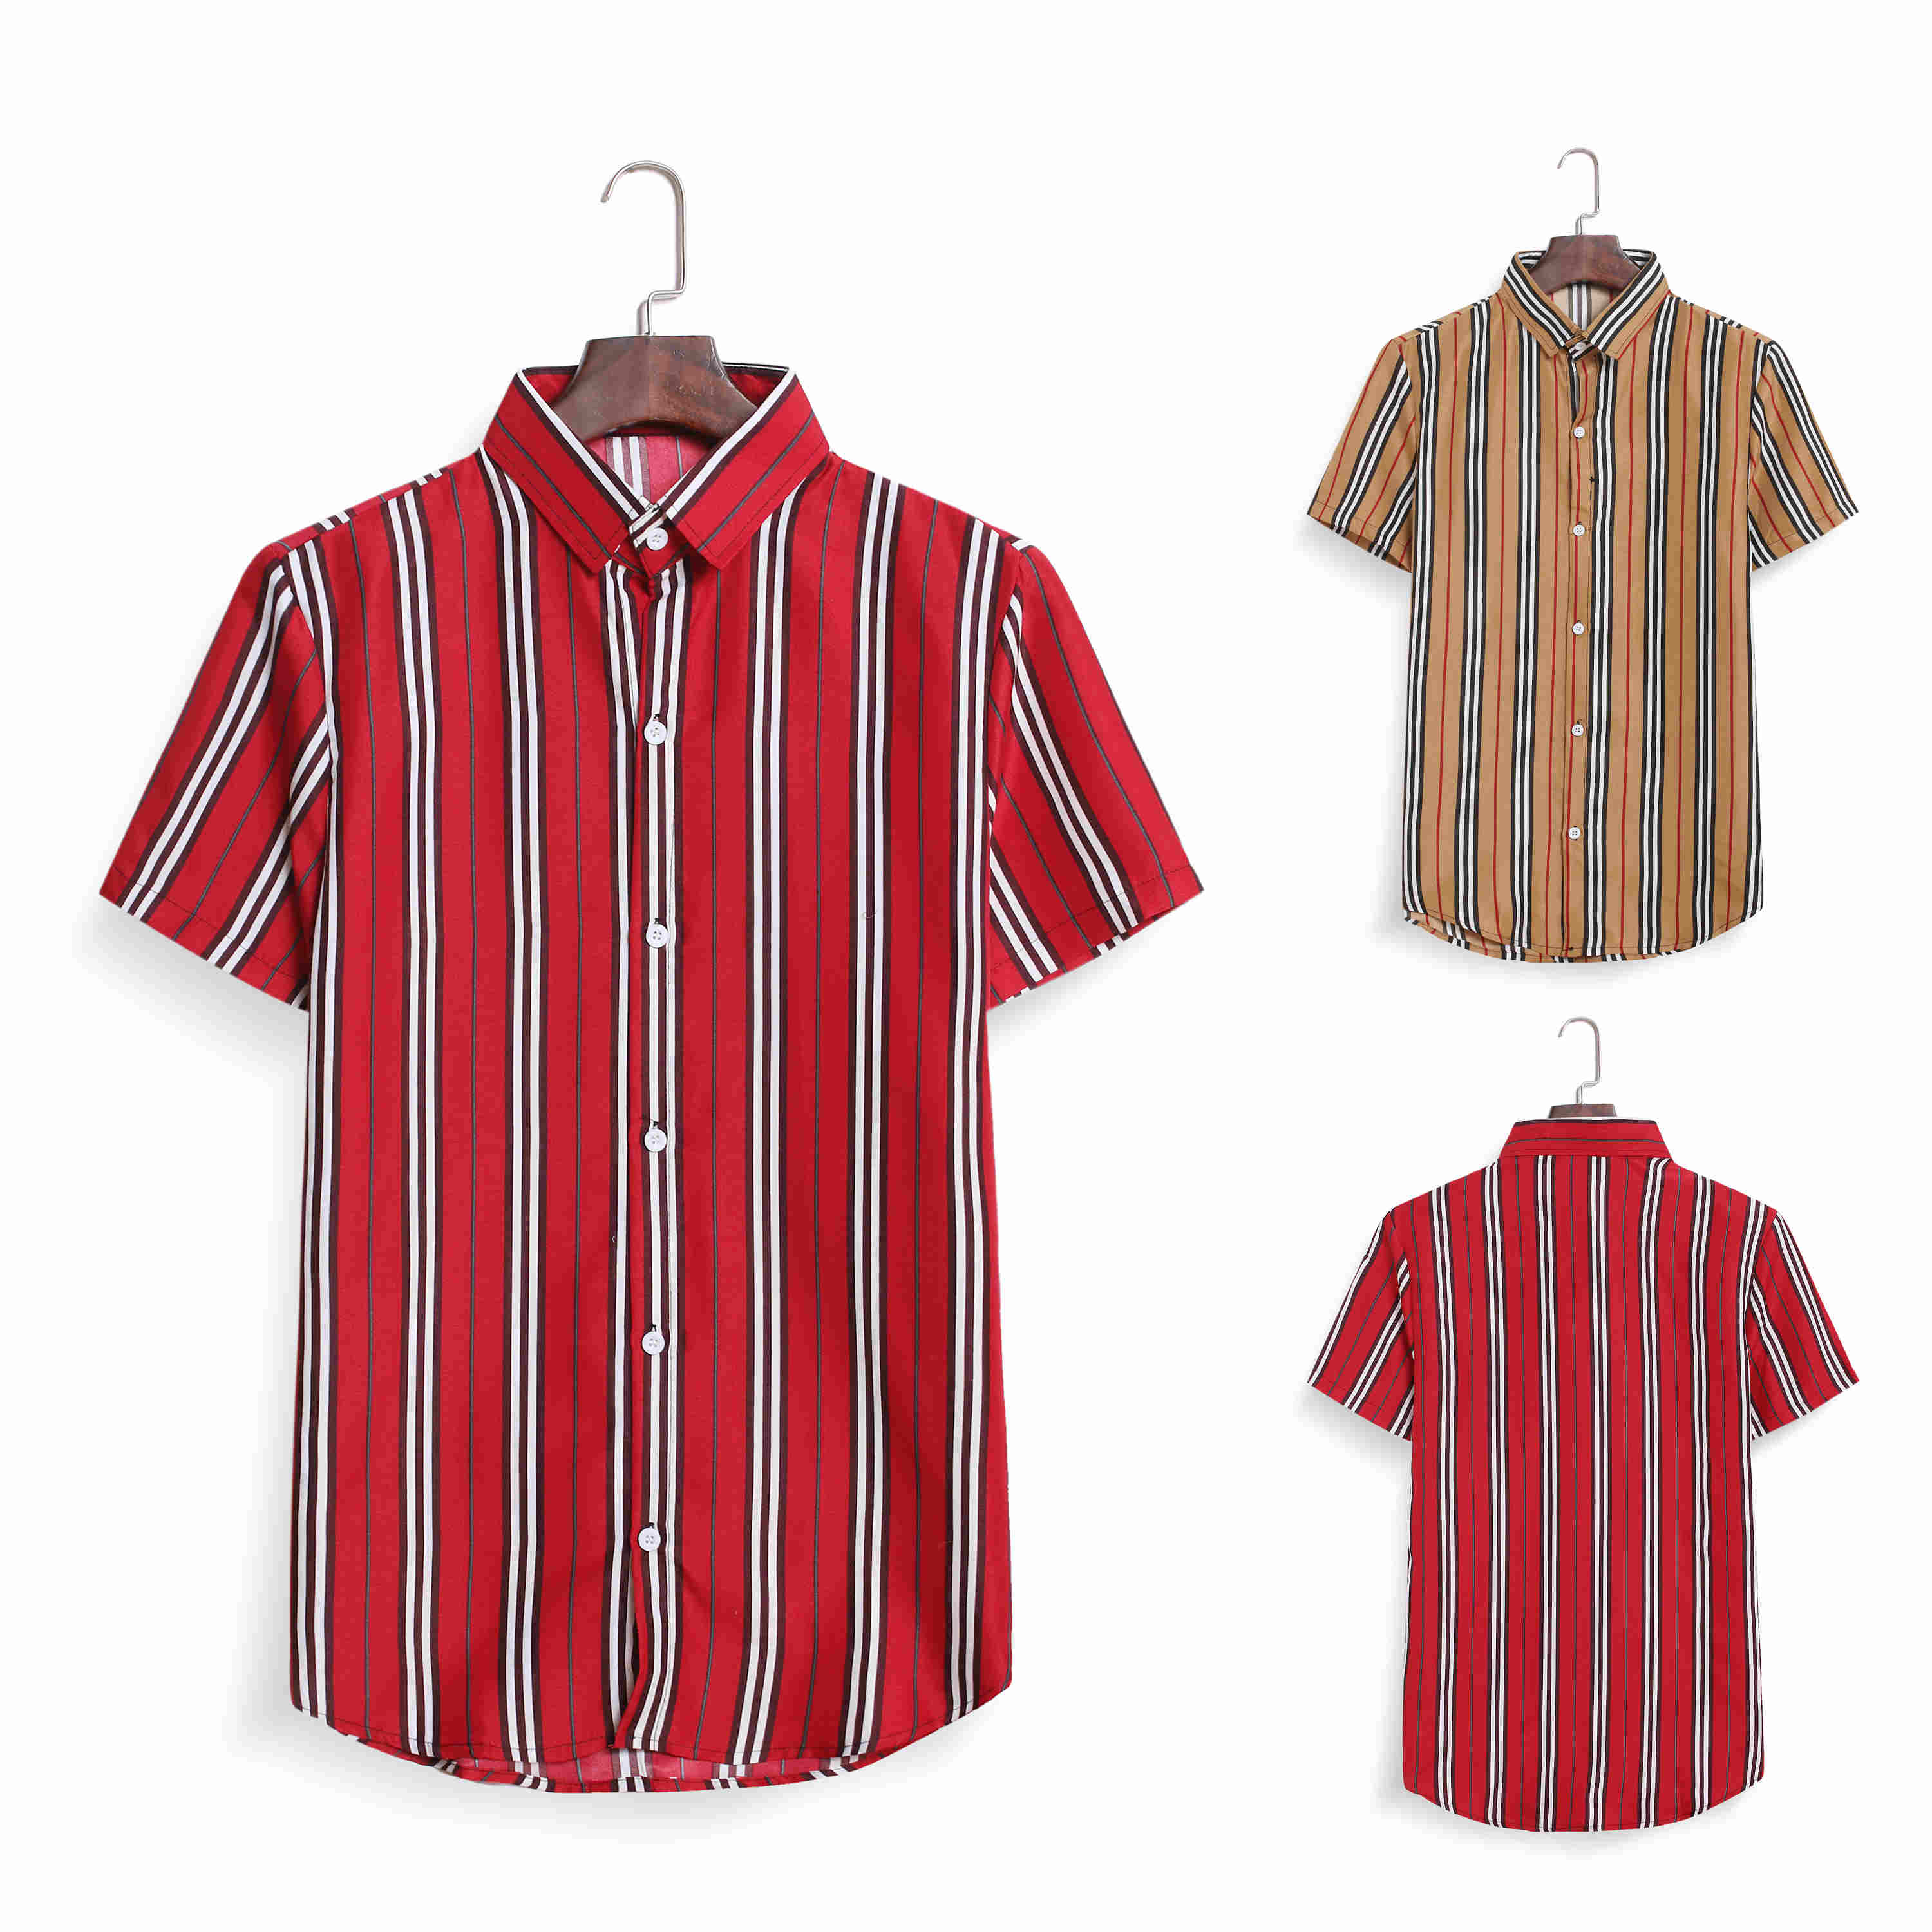 Men's Casual Short Sleeve Shirt Men's Striped Shirt Short Sleeve Multi-color Striped Shirt Striped Short Sleeve Man's Tops